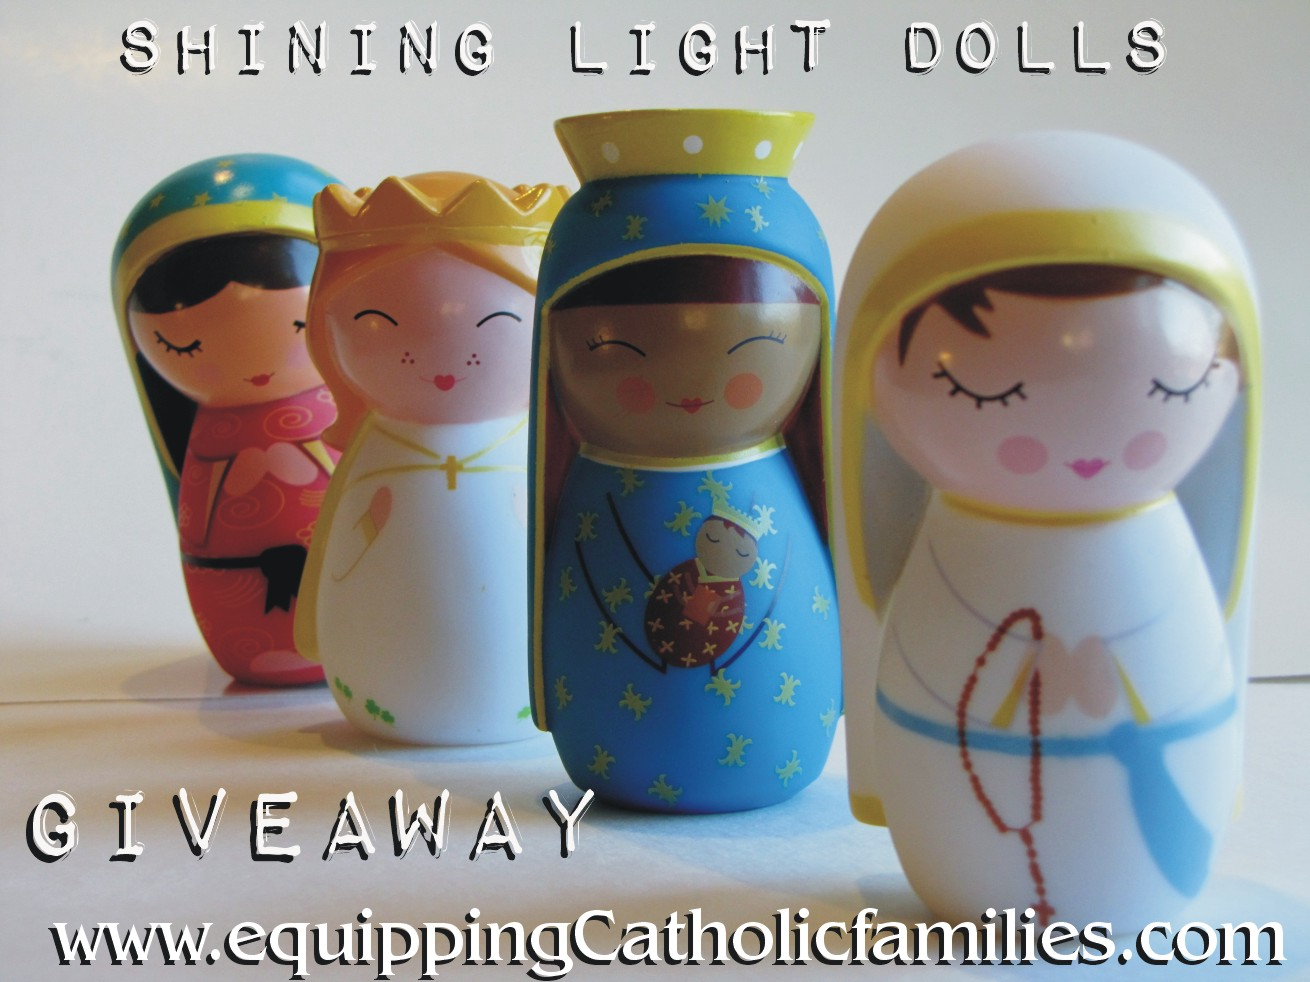 Shining Light Dolls: GIVEAWAY!